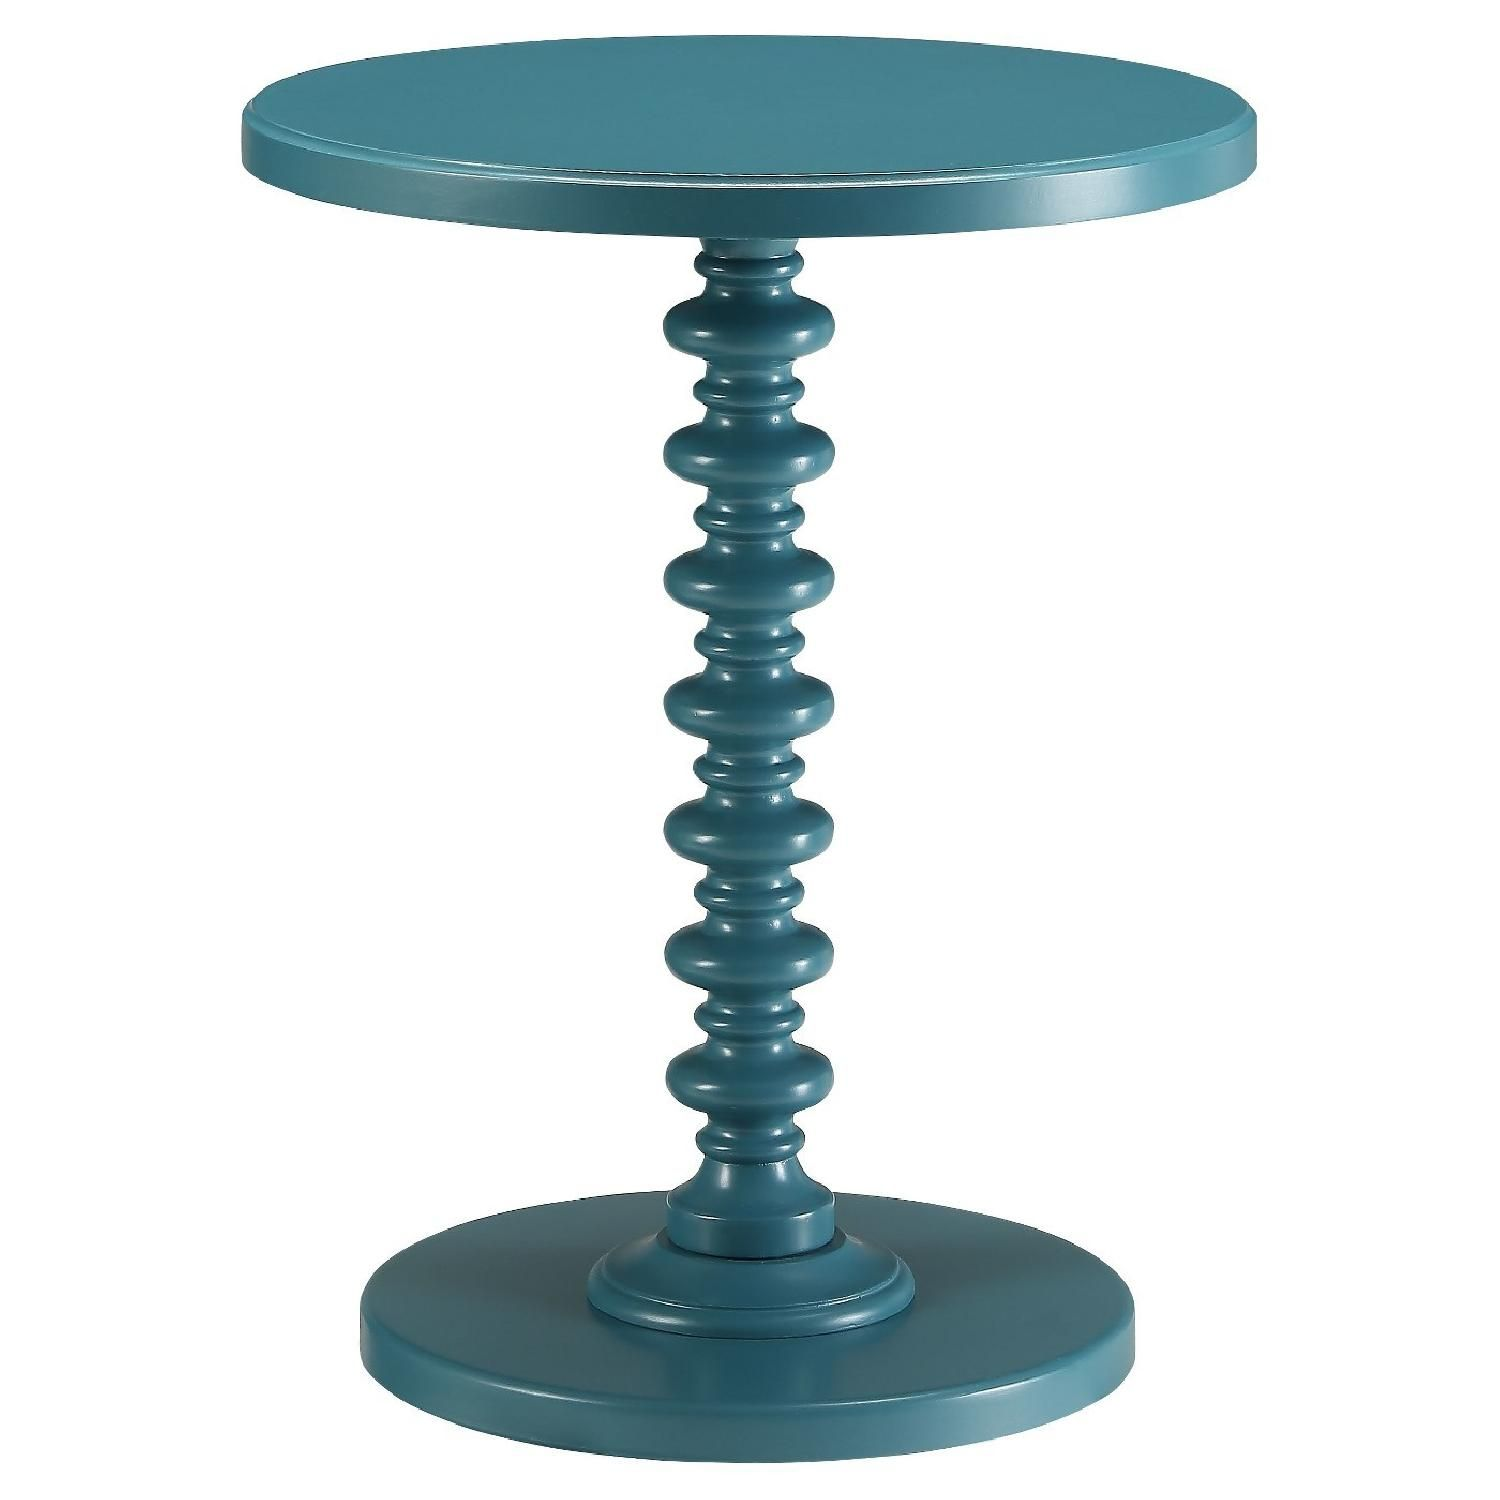 target acton side table blue nyc life round accent small lamp west elm glass percussion bell kit outside lawn furniture fold away desk and iron end tables rustic wood dining